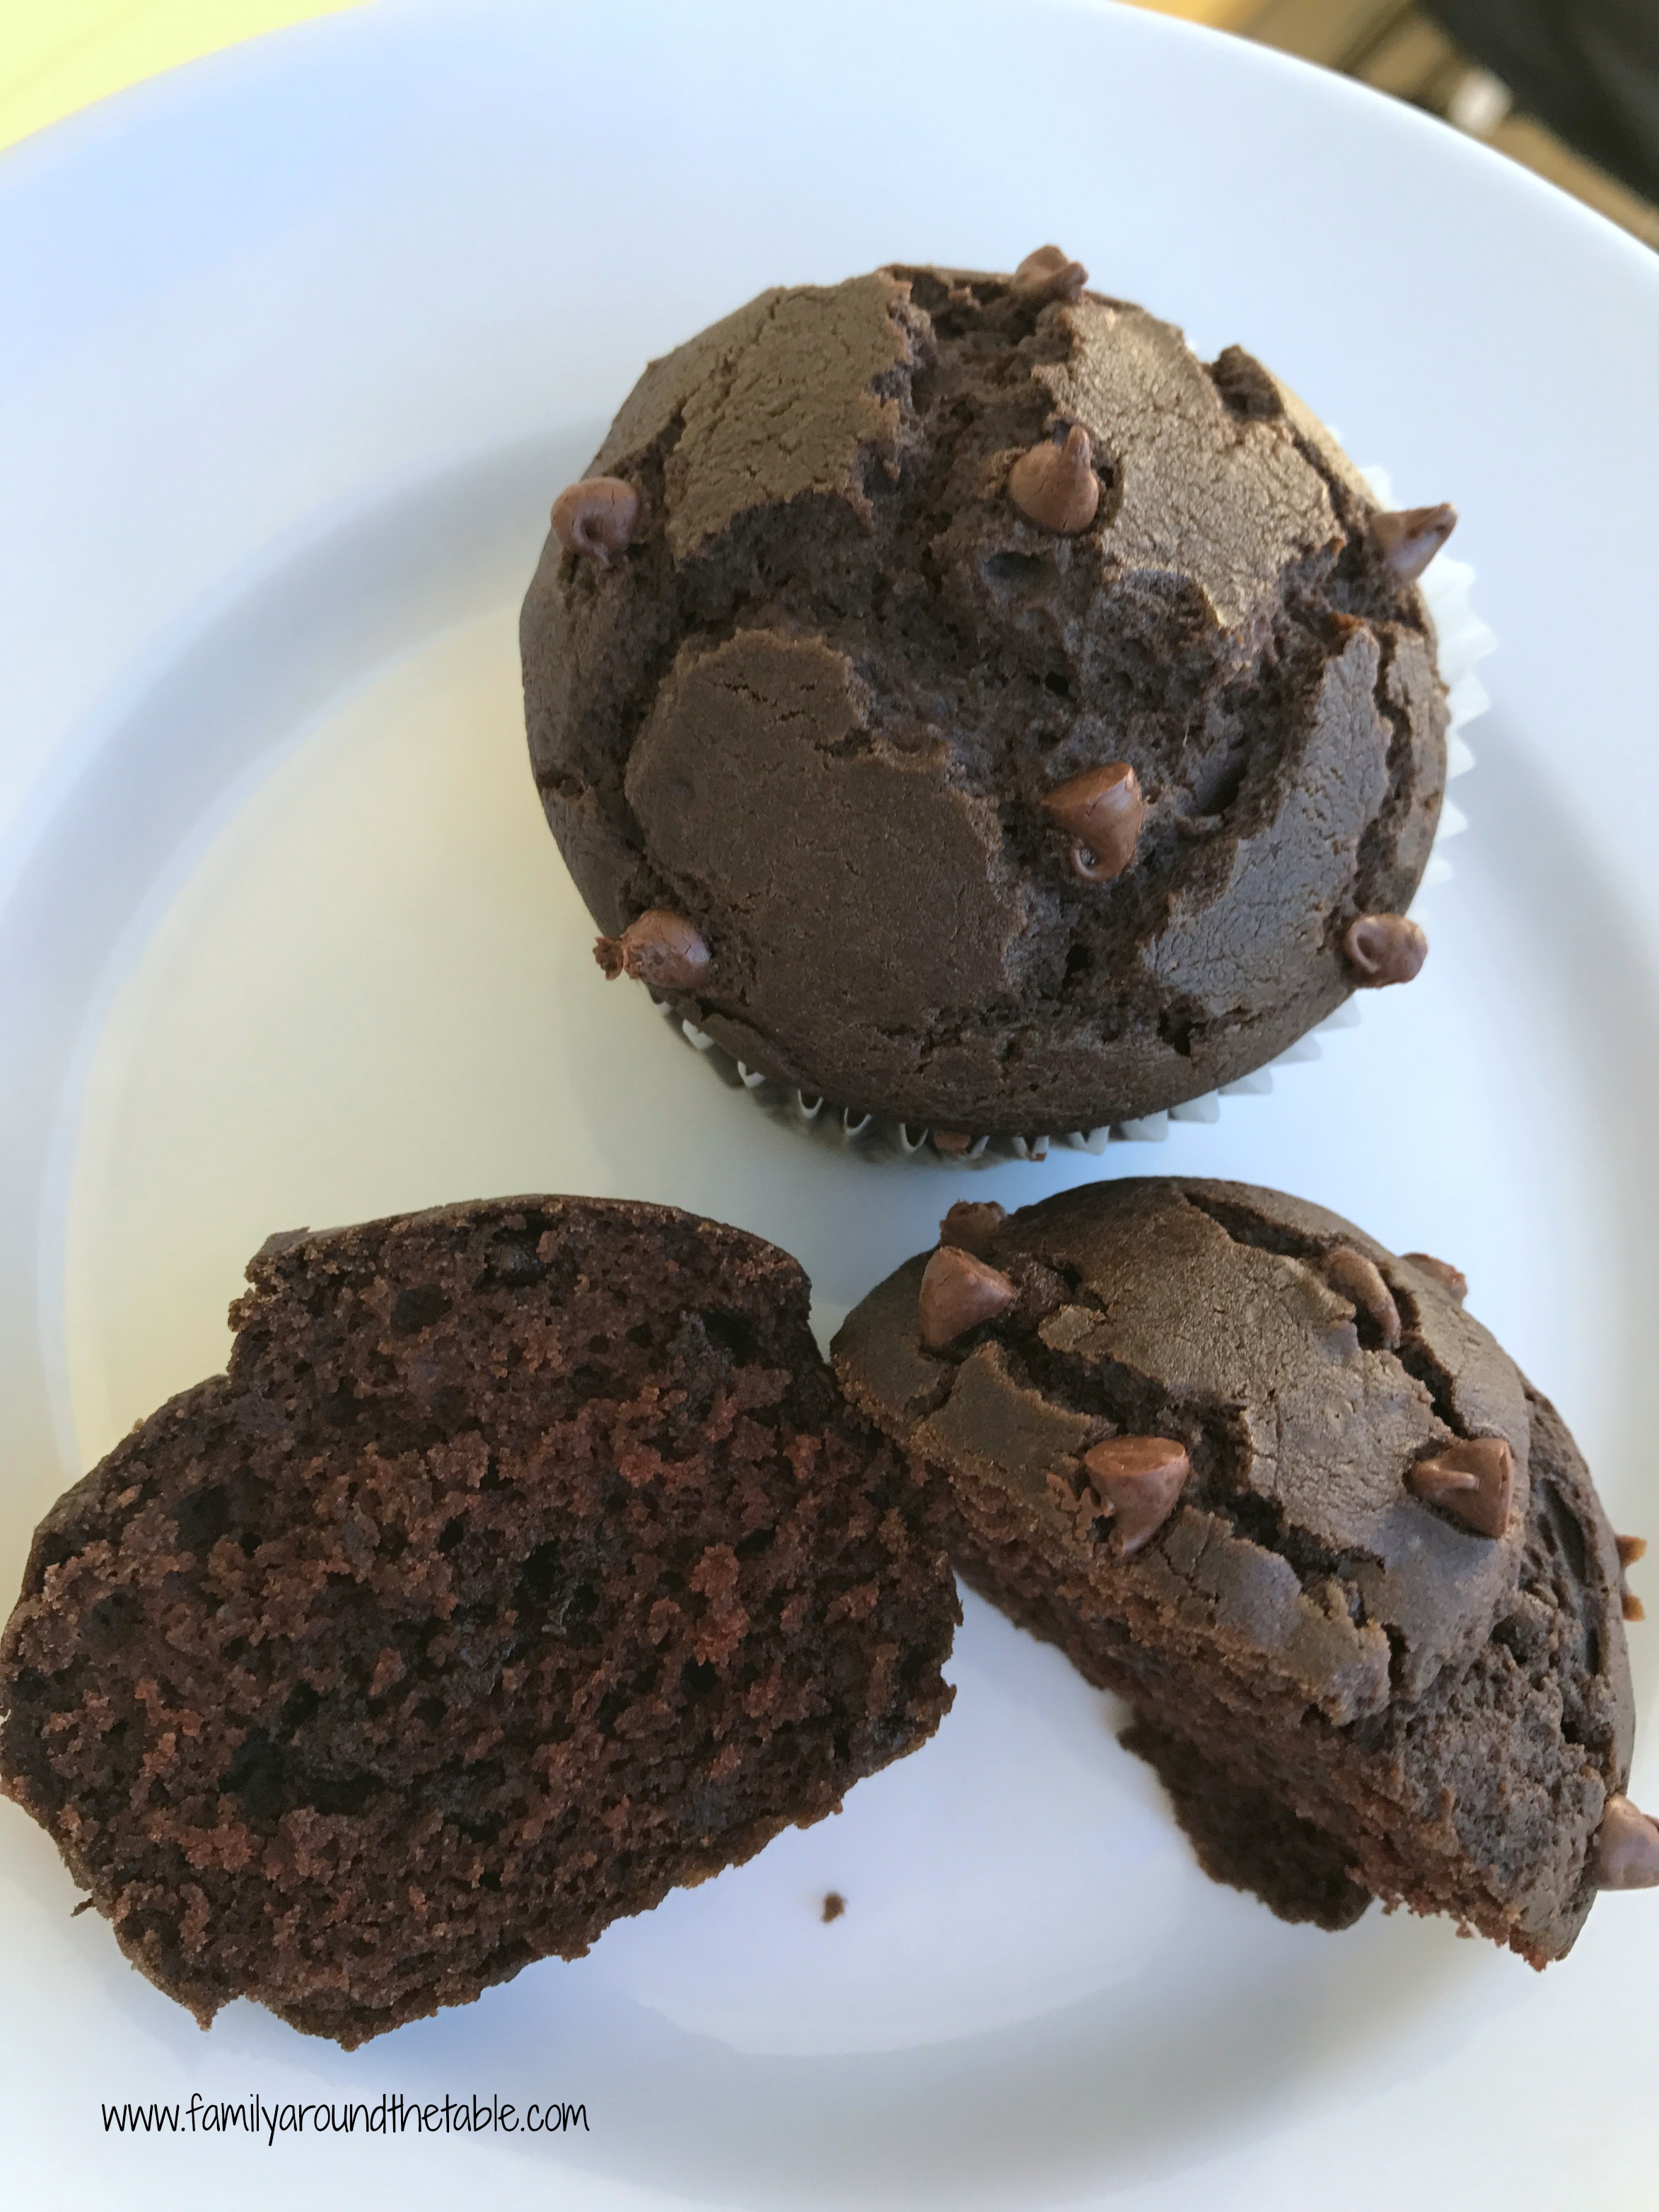 Chocolate chip chocolate muffins are full of flavor.